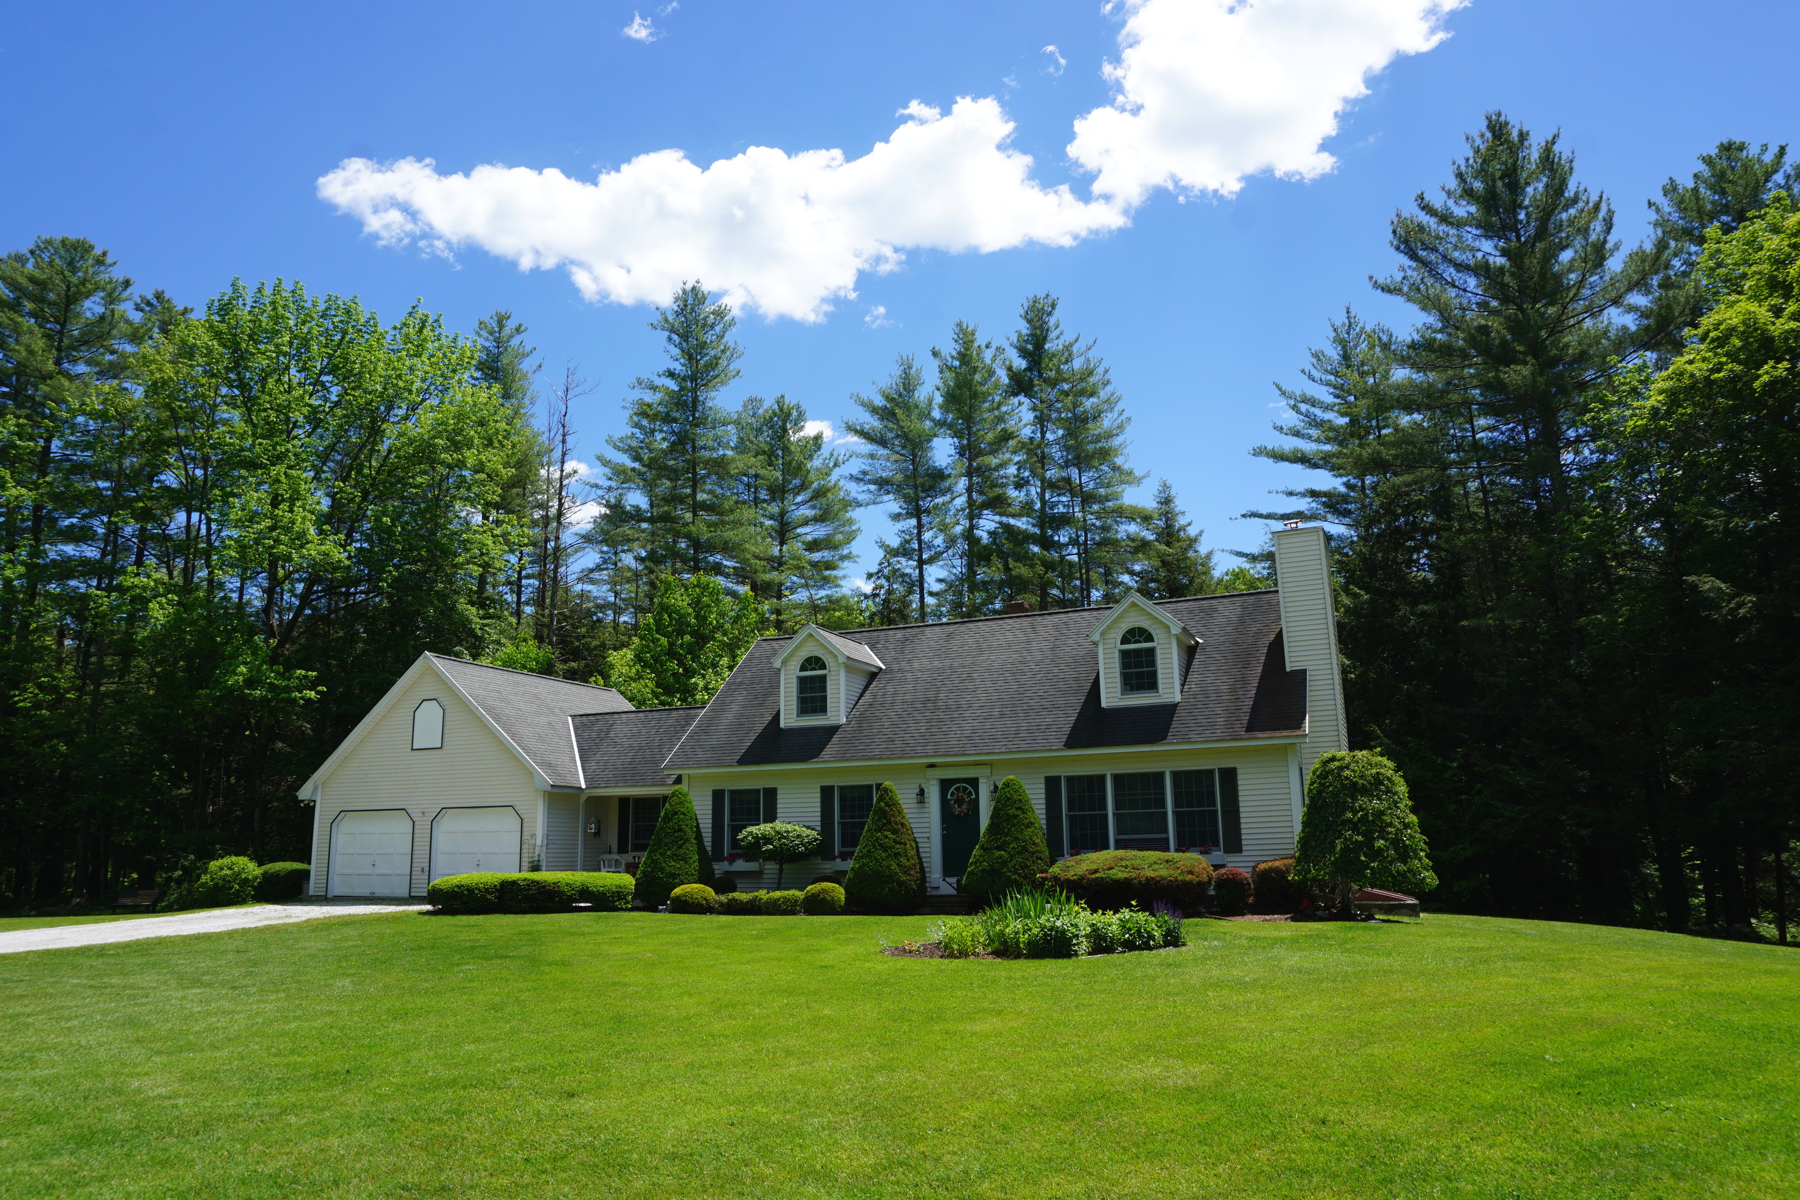 single family homes for Sale at WALLINGFORD - 10 ACRES 900 Haven Hill Rd Wallingford, Vermont 05773 United States